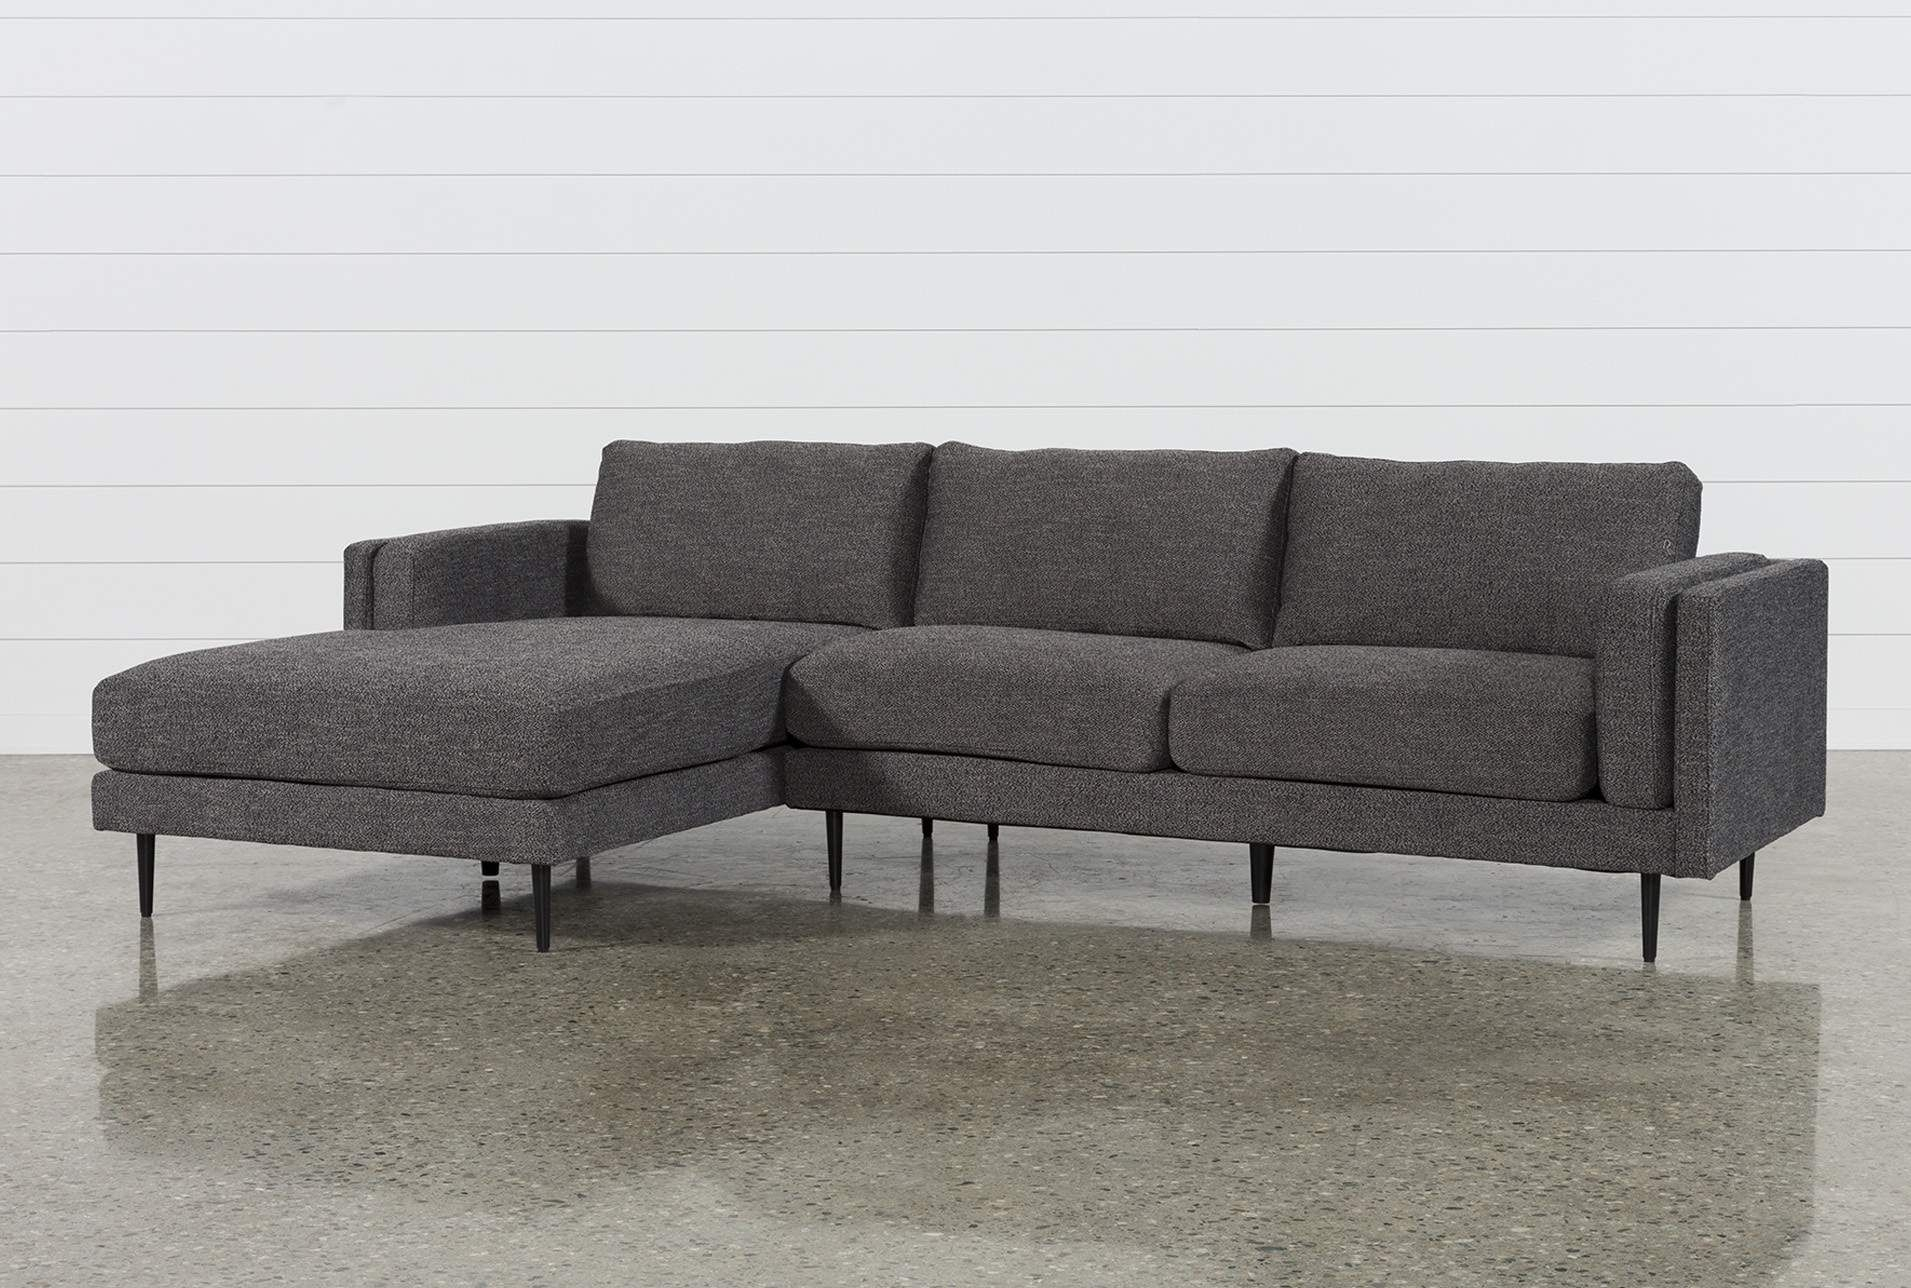 Aquarius Dark Grey 2 Piece Sectional W/laf Chaise | Pinterest Within Turdur 2 Piece Sectionals With Laf Loveseat (Image 1 of 25)